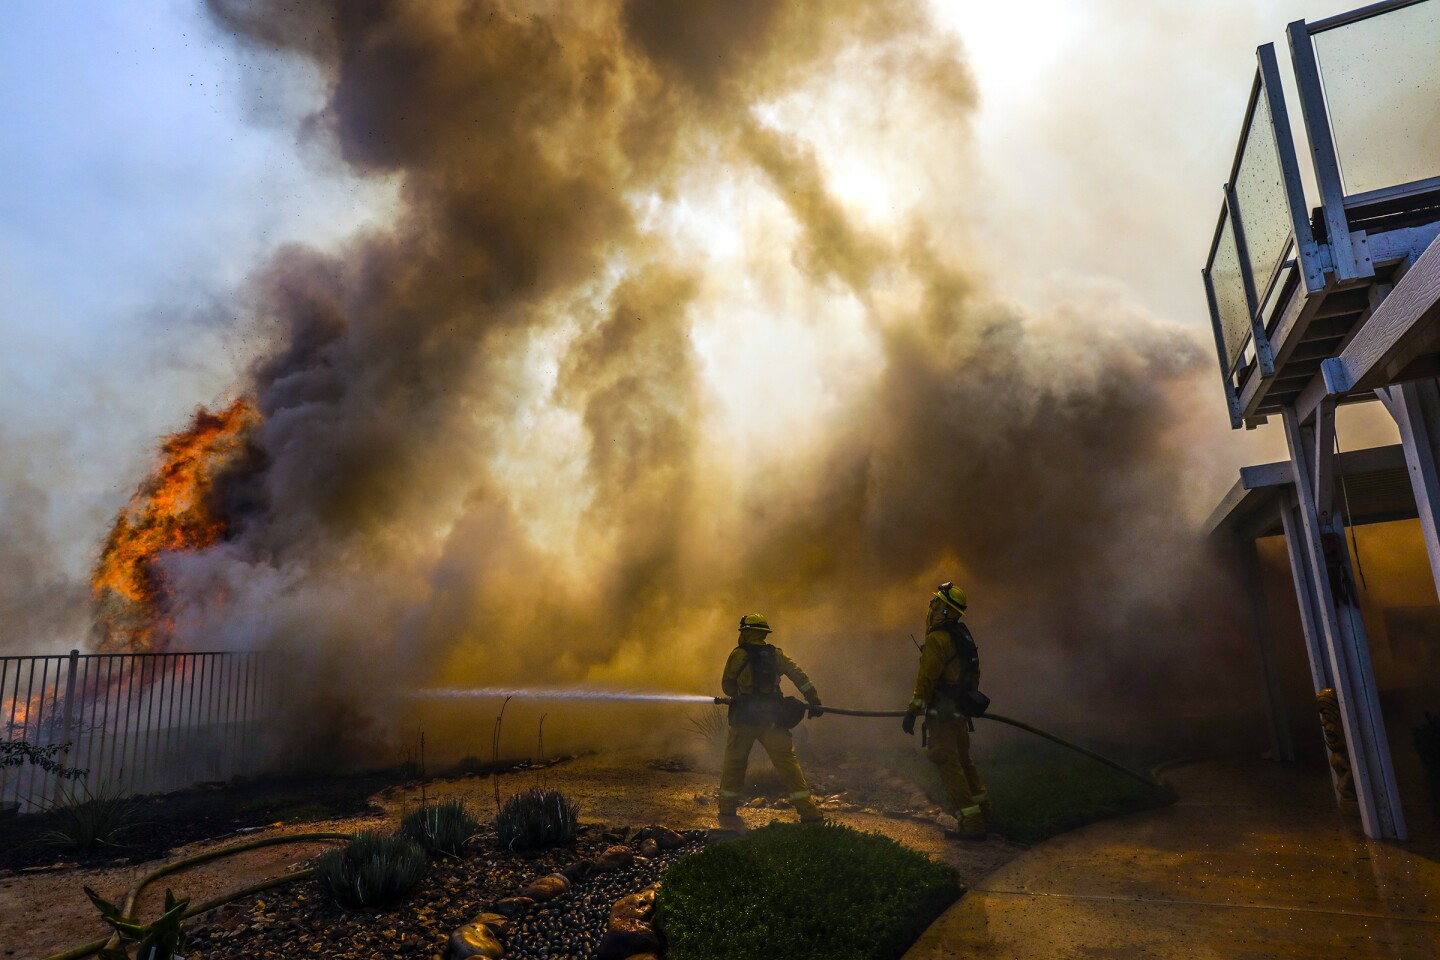 MURRIETA, CA - SEPTEMBER 05, 2019 — Firefighters work in heavy smoke and flames to protect a structure on Silverewood Street in Murrieta. Tenaja fire continues rage in Murrieta on Thursday. A fast-moving fire erupted in hillside terrain near Murrieta on Wednesday night, quickly scorching almost 1,000 acres and prompting mandatory evacuation orders for multiple residential enclaves as fire officials urged others nearby to voluntarily leave. (Irfan Khan/Los Angeles Times)